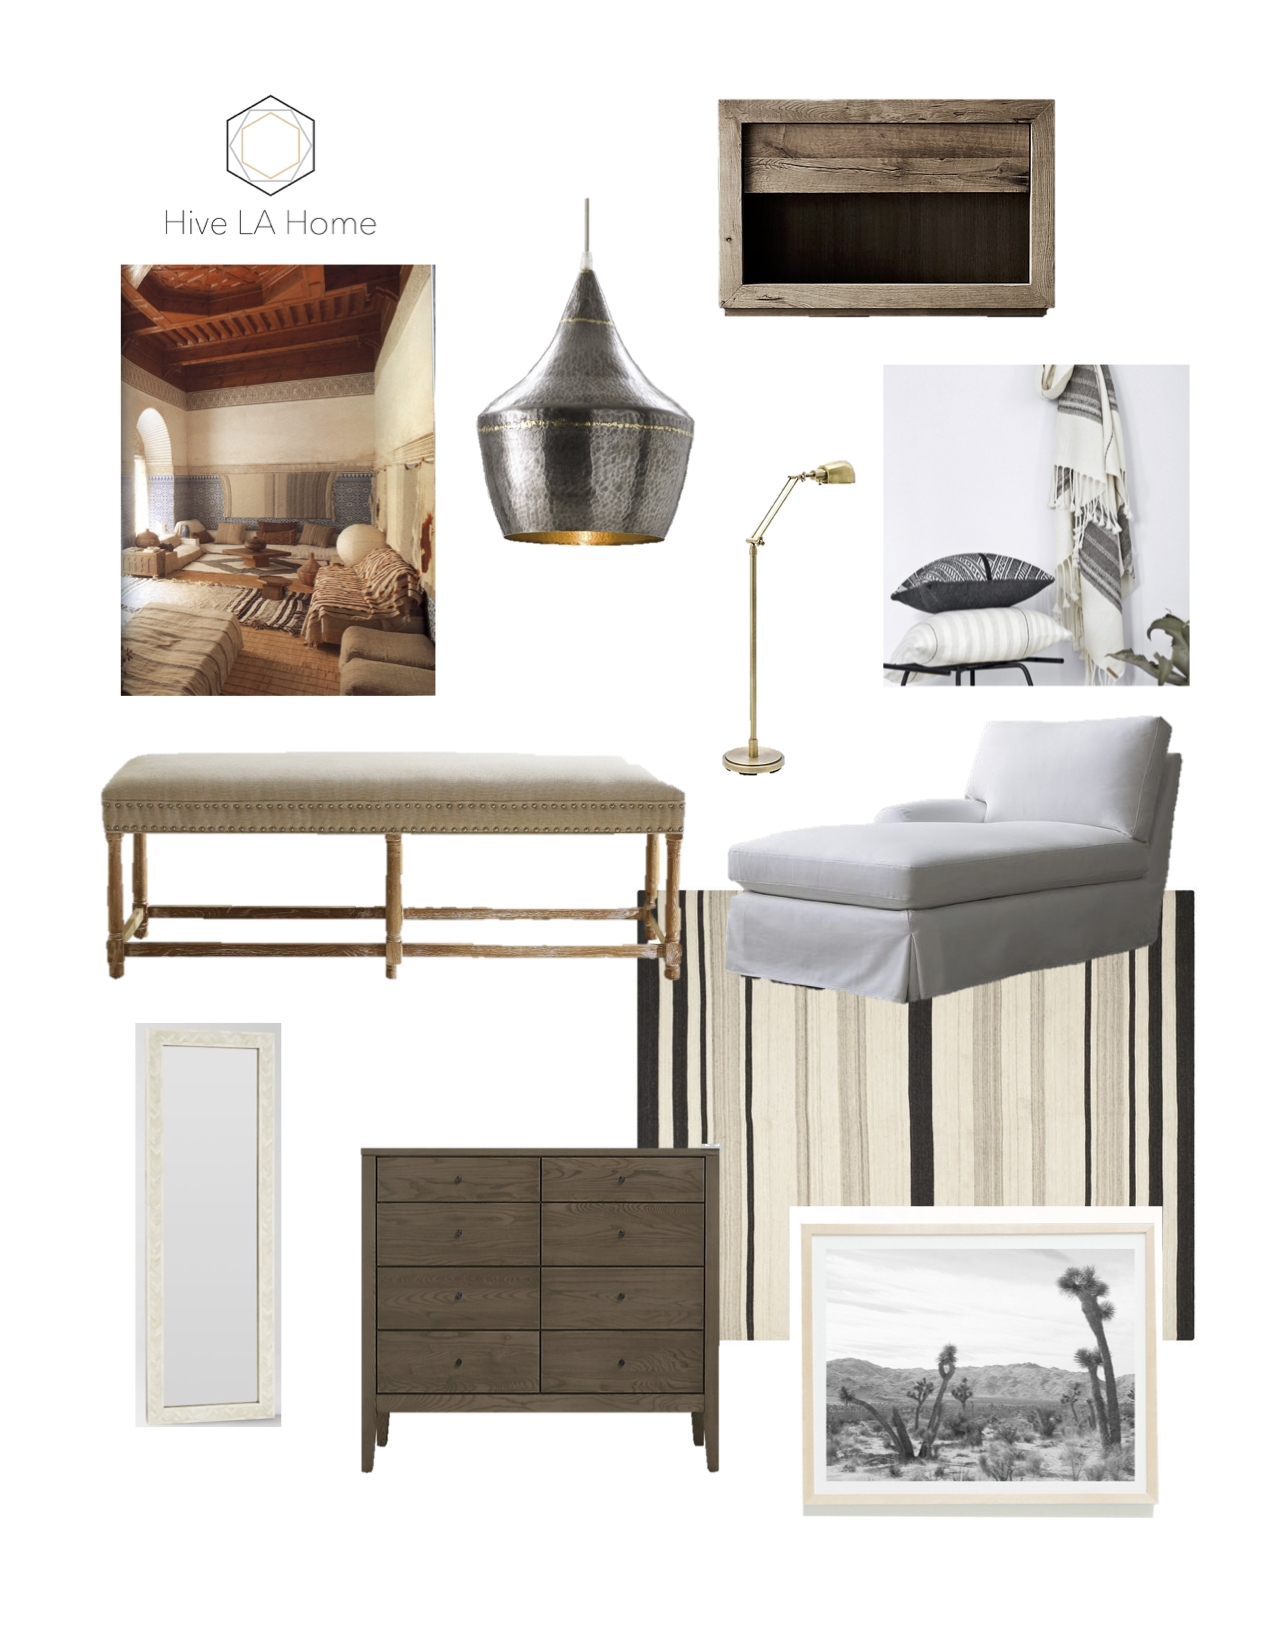 Mason 1 Light Sconce,   Arteriors Home  ; Reclaimed Russian Oak Open Nightstand,   Restoration Hardware  ; Assorted PIllows and Accessories,   The Citizenry  ; House of Troy Antique Brass Floor Lamp,   Lamps Plus  ; Cornelia Bench,  One Kings Lane ;Elyson Slipcovered Chaise Lounge,   Crate and Barrel  ; Bone Inlay Parsons Mirror,   West Elm  ; Hudson 6-Drawer Dresser,   Room and Board  ; Handwoven Moroccan Dhurrie, Safavieh,   overstock.com  ; Black and White Print,  Joshua Trees #4, WilderCalifornia,   etsy.com  . Image credit:  bighardsun.tublr.com